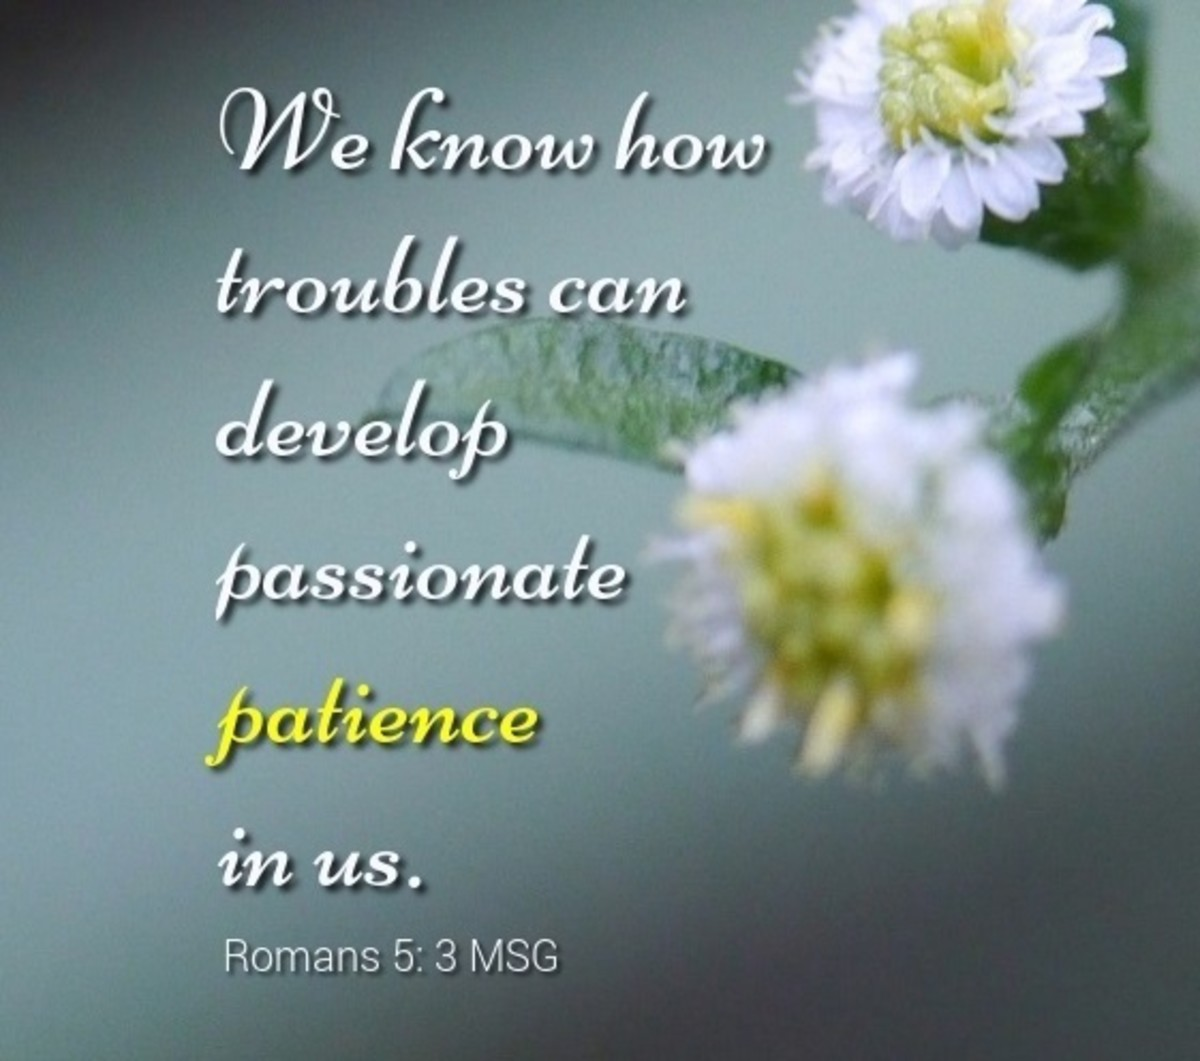 We know how troubles can develop passionate patience in us,